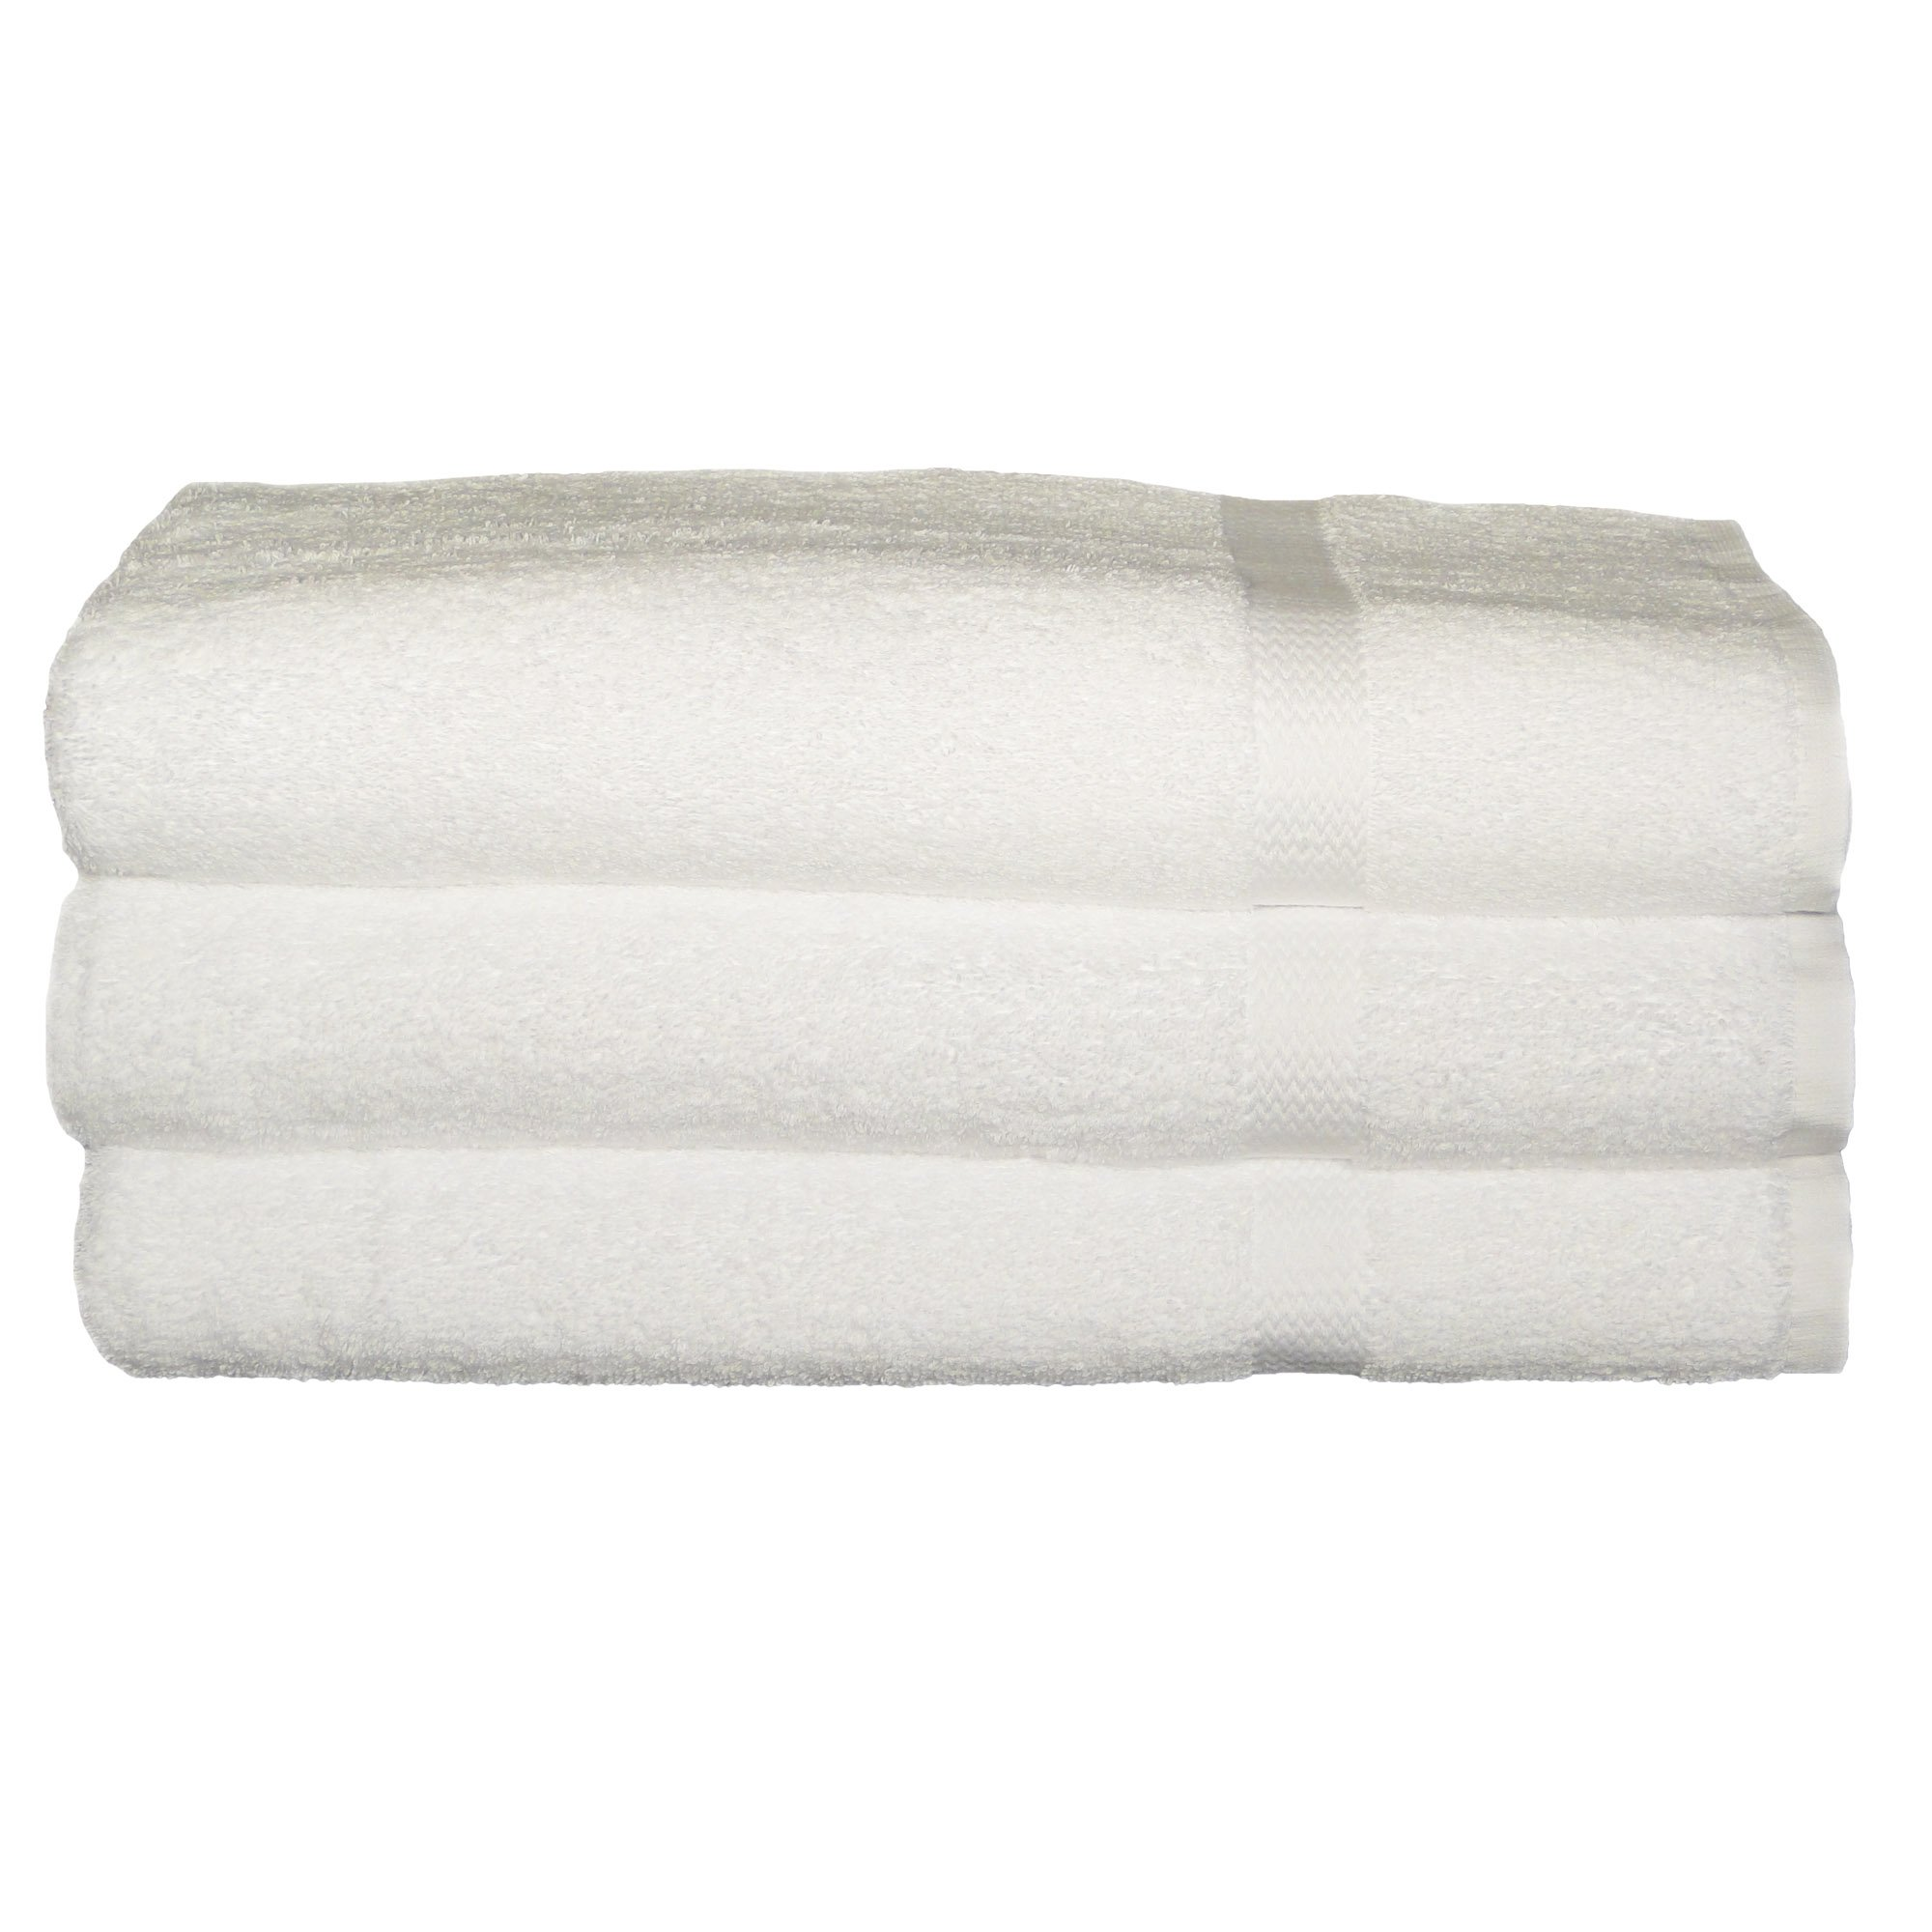 Baltic Linen   Royal Excellence100% Ring Spun Cotton Hotel Bath Sheets 35 x 70-inch White 2 Pack